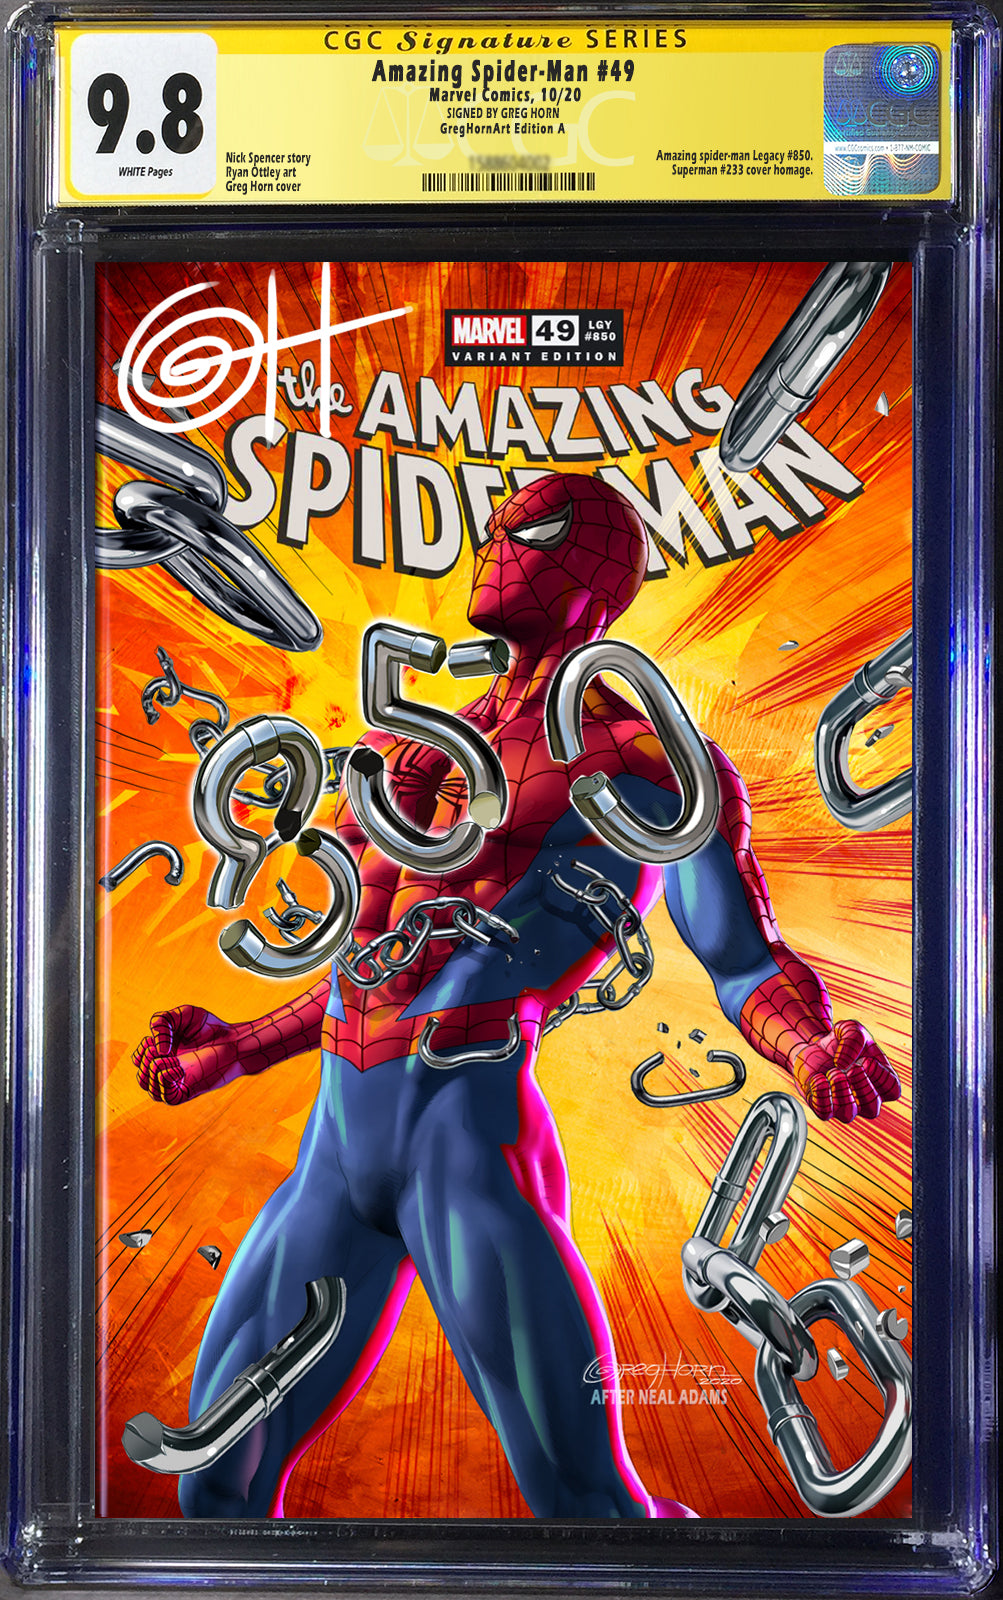 Amazing Spider-Man # 850 - Greg Horn Art CGC Signature Series Options